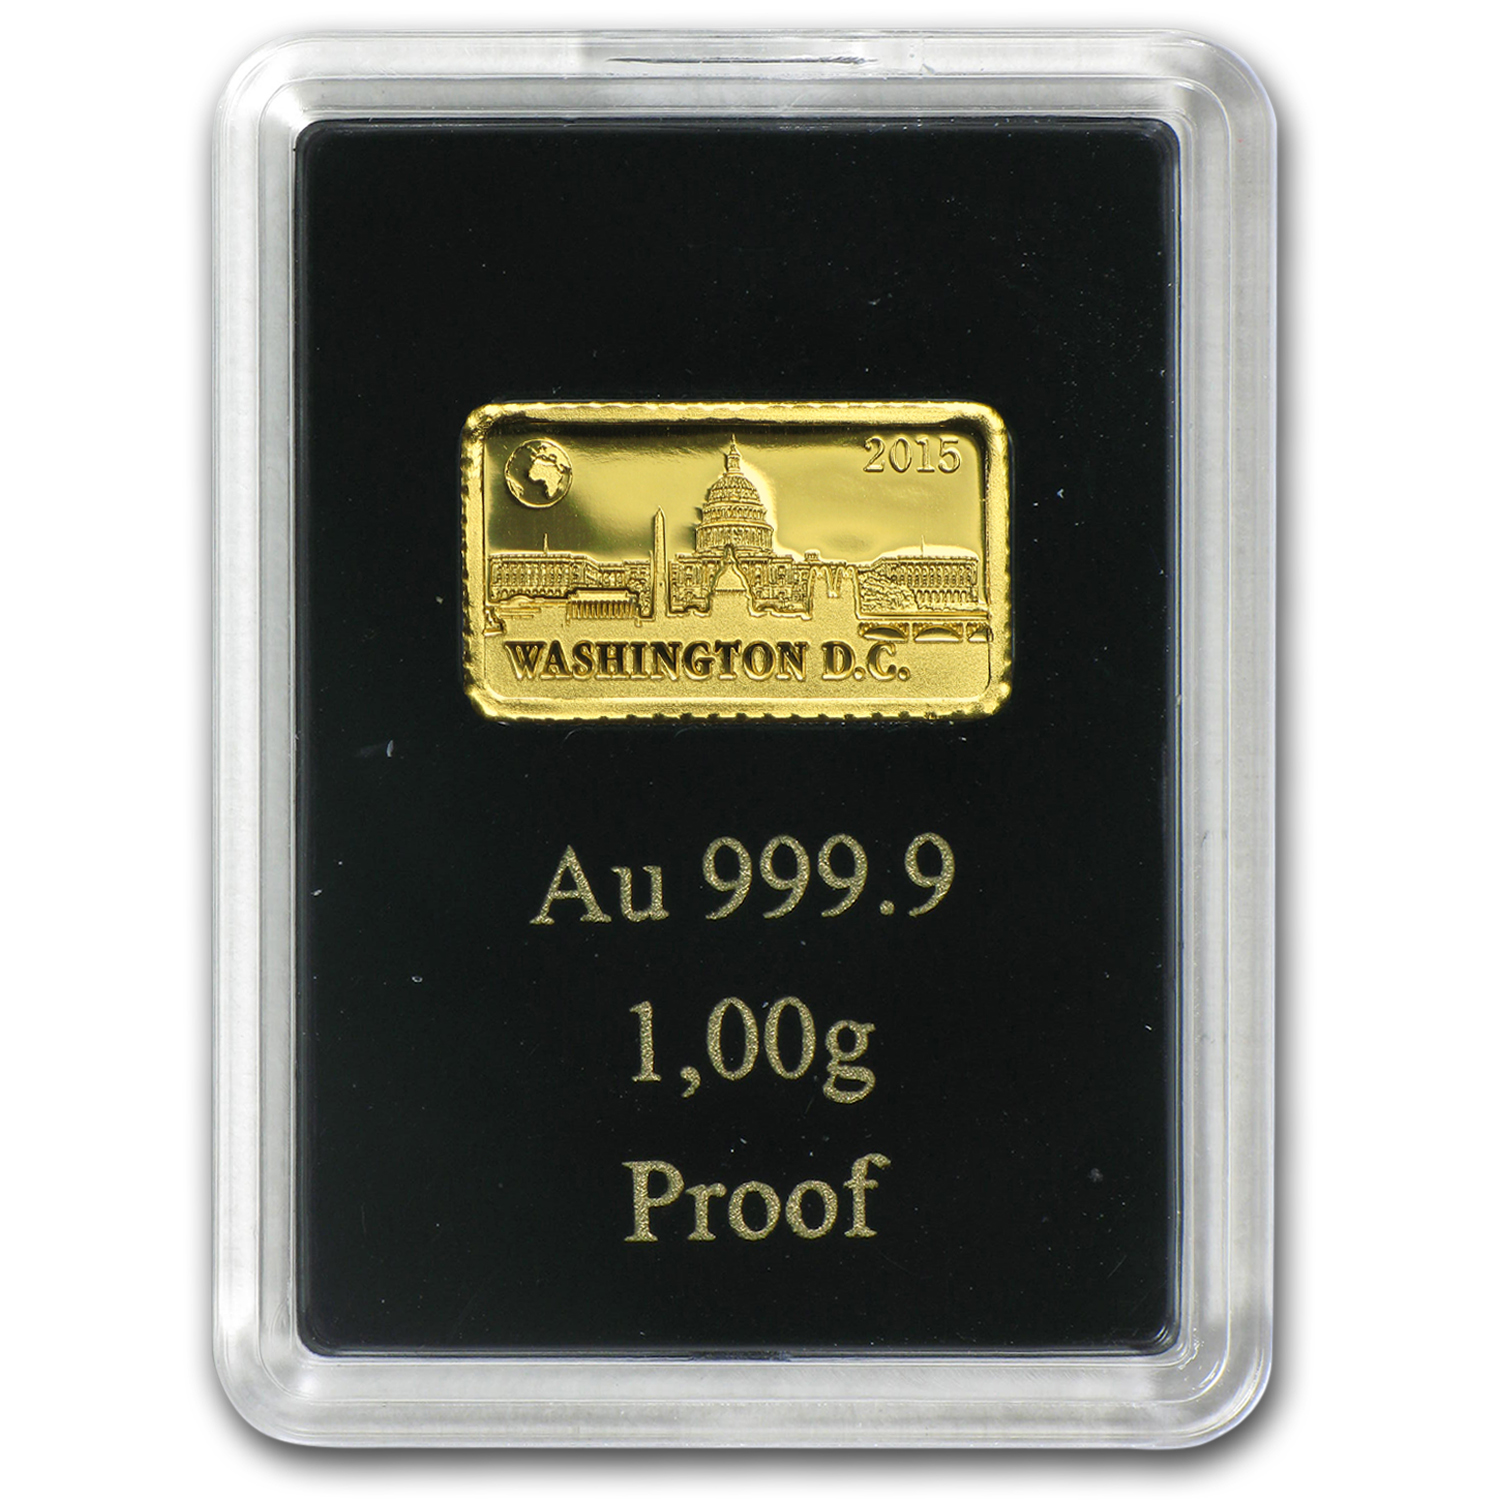 2015 Solomon Islands 1 gram Gold Landmarks of the World (Wash.)